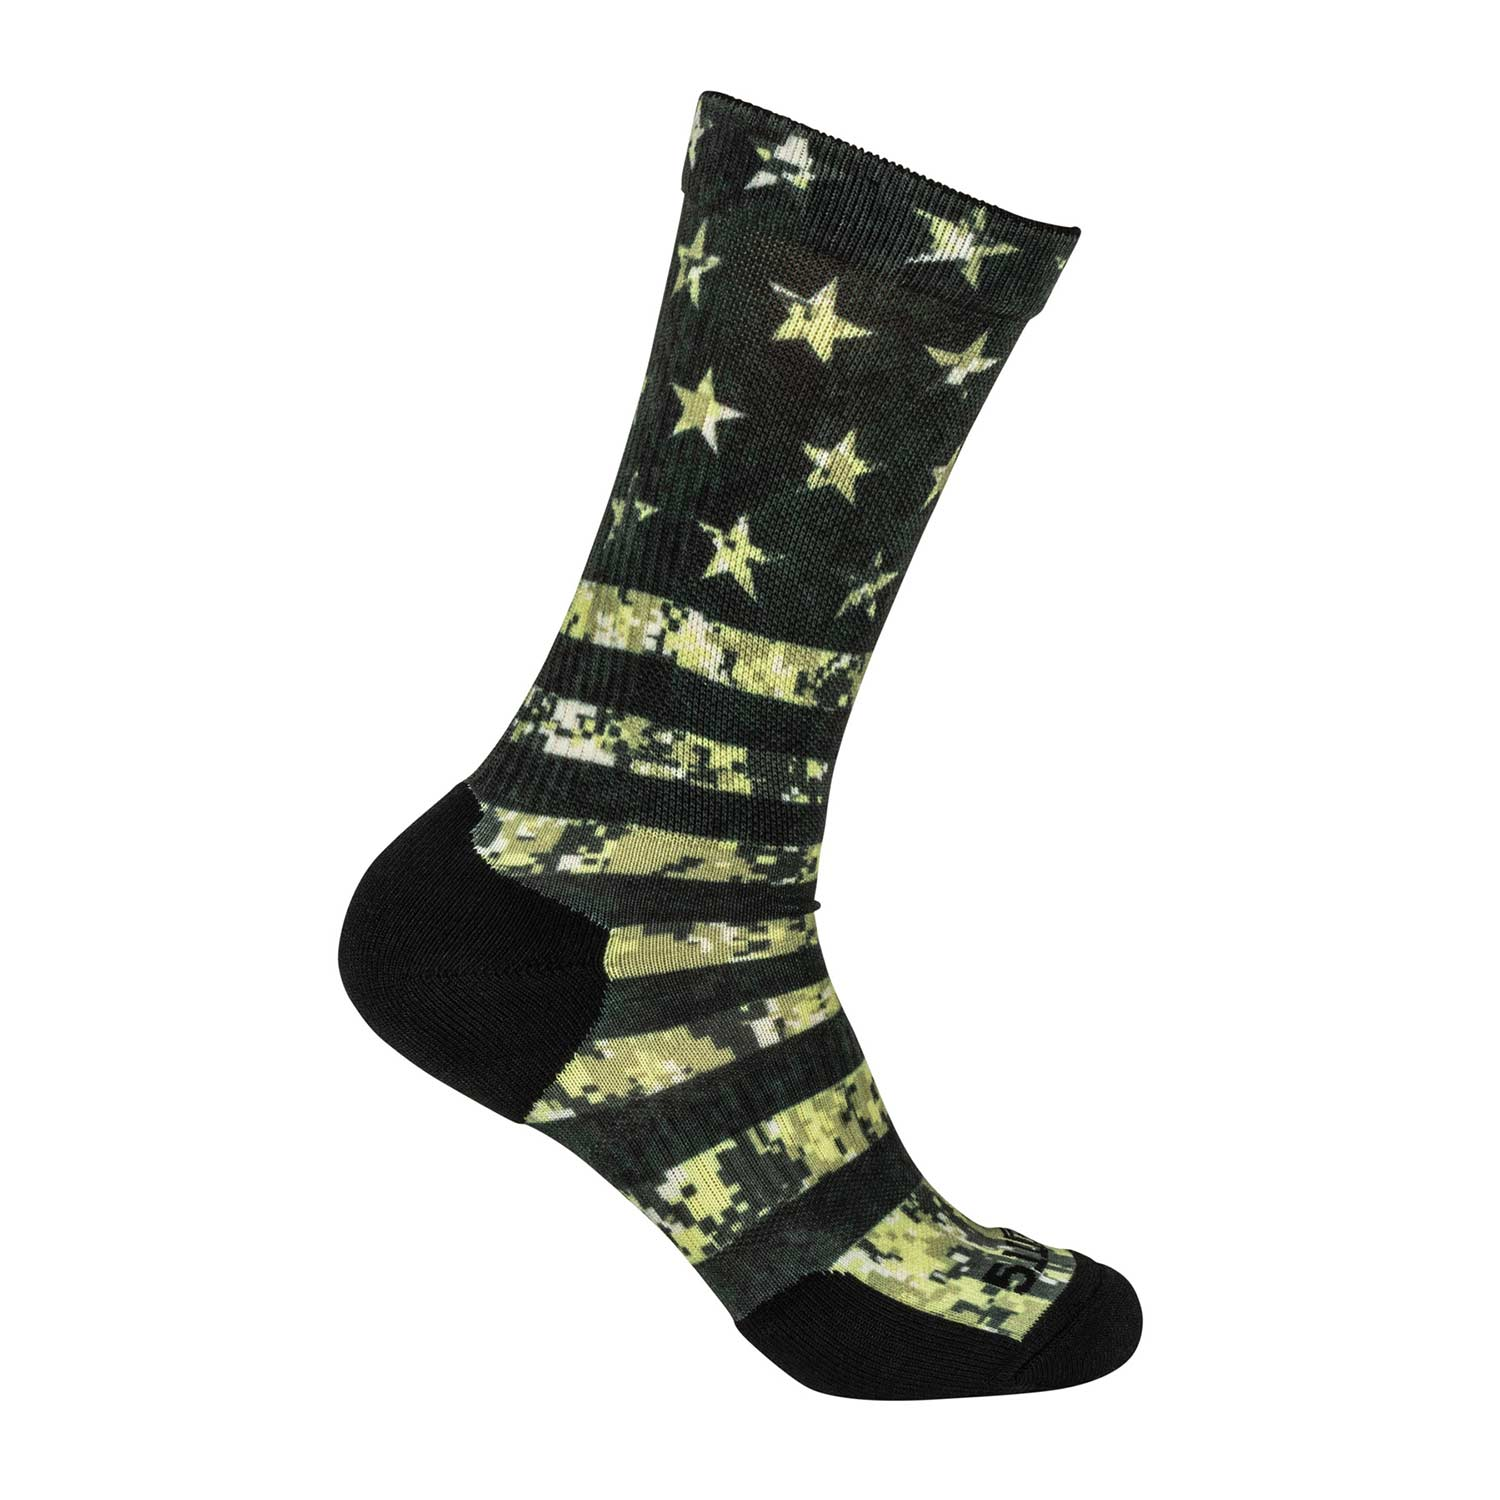 5.11 Tactical Socks and Awe Tactical Flag Crew Socks